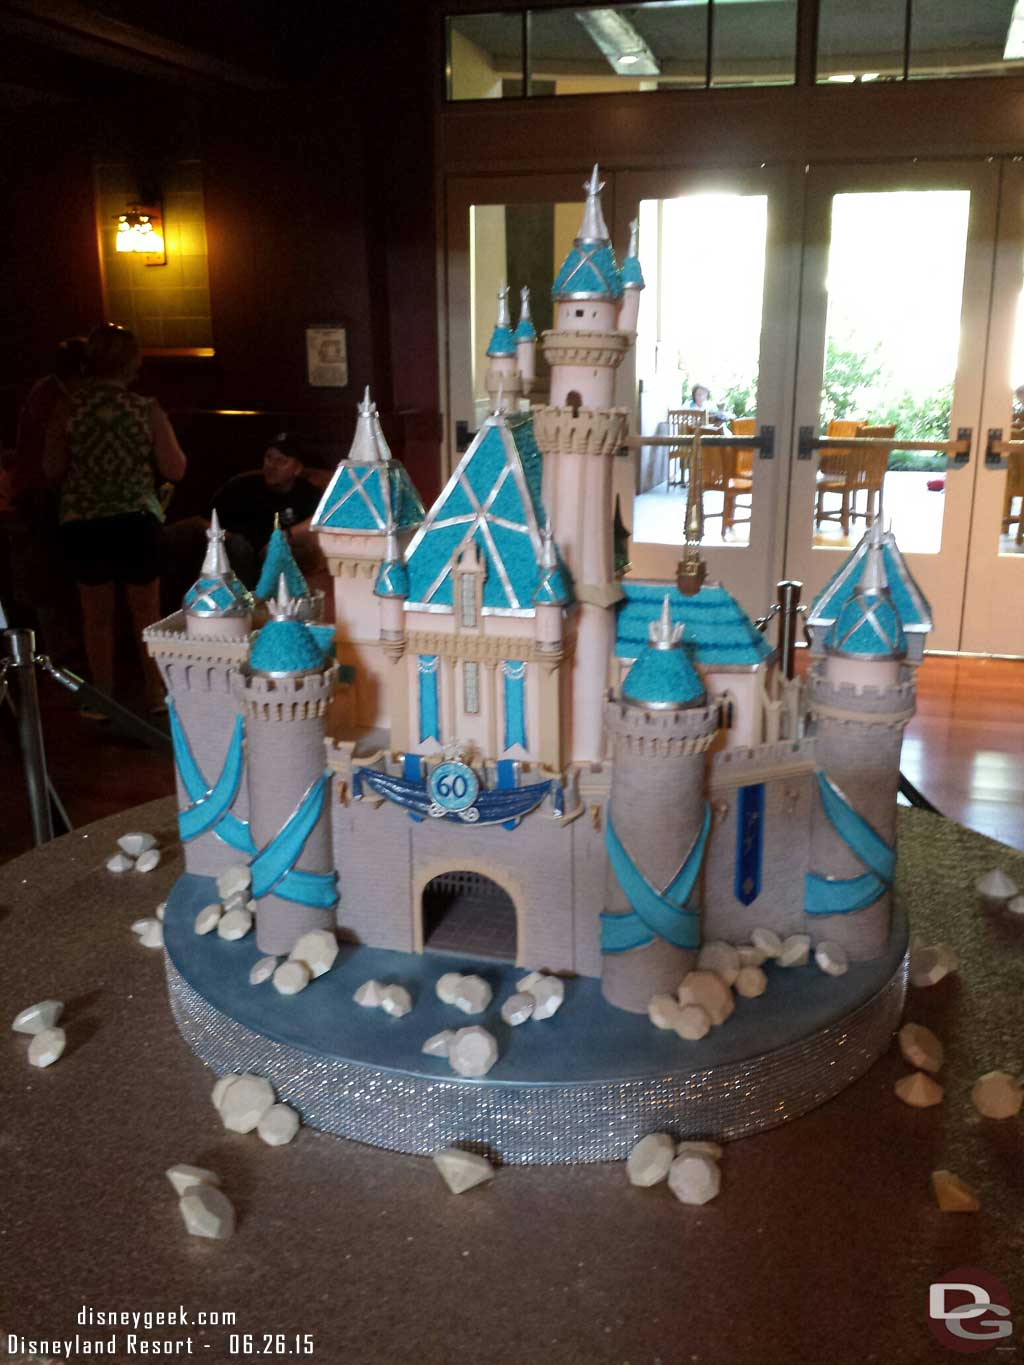 #Disneyland60 Sleeping Beauty Castle Cake in the Grand Californian lobby